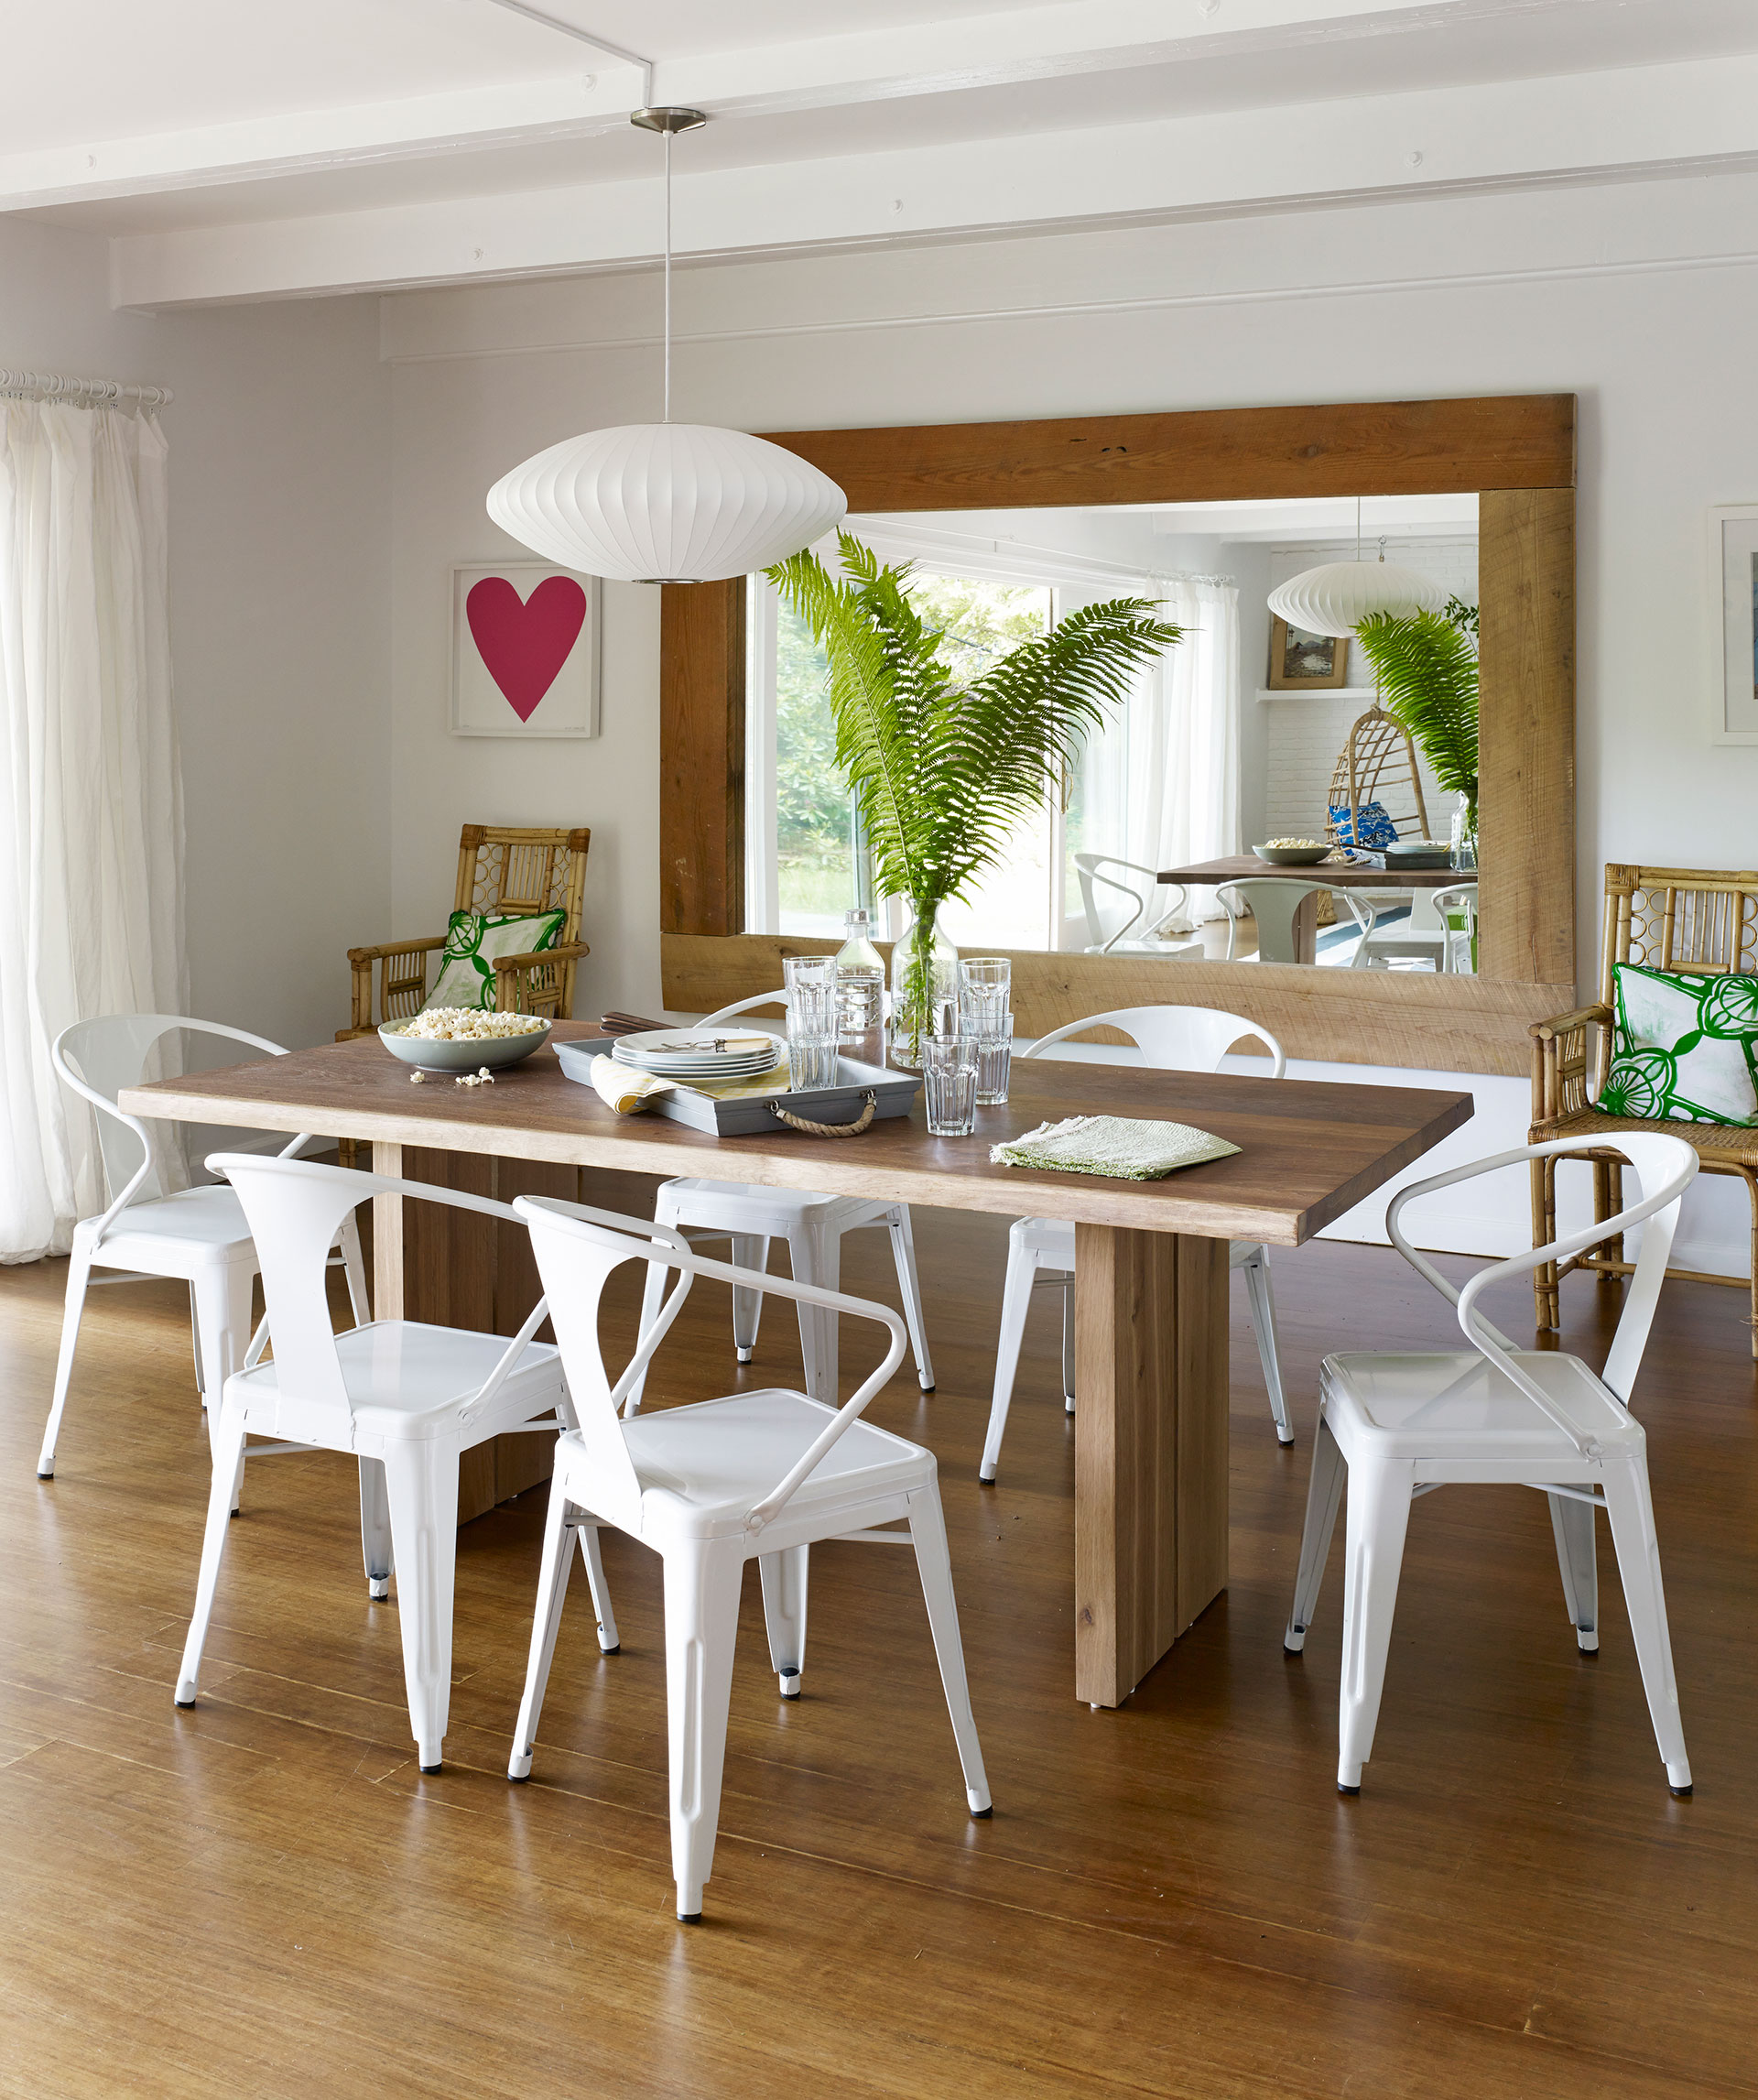 Marvelous Dining Room Chair Ideas Gallery